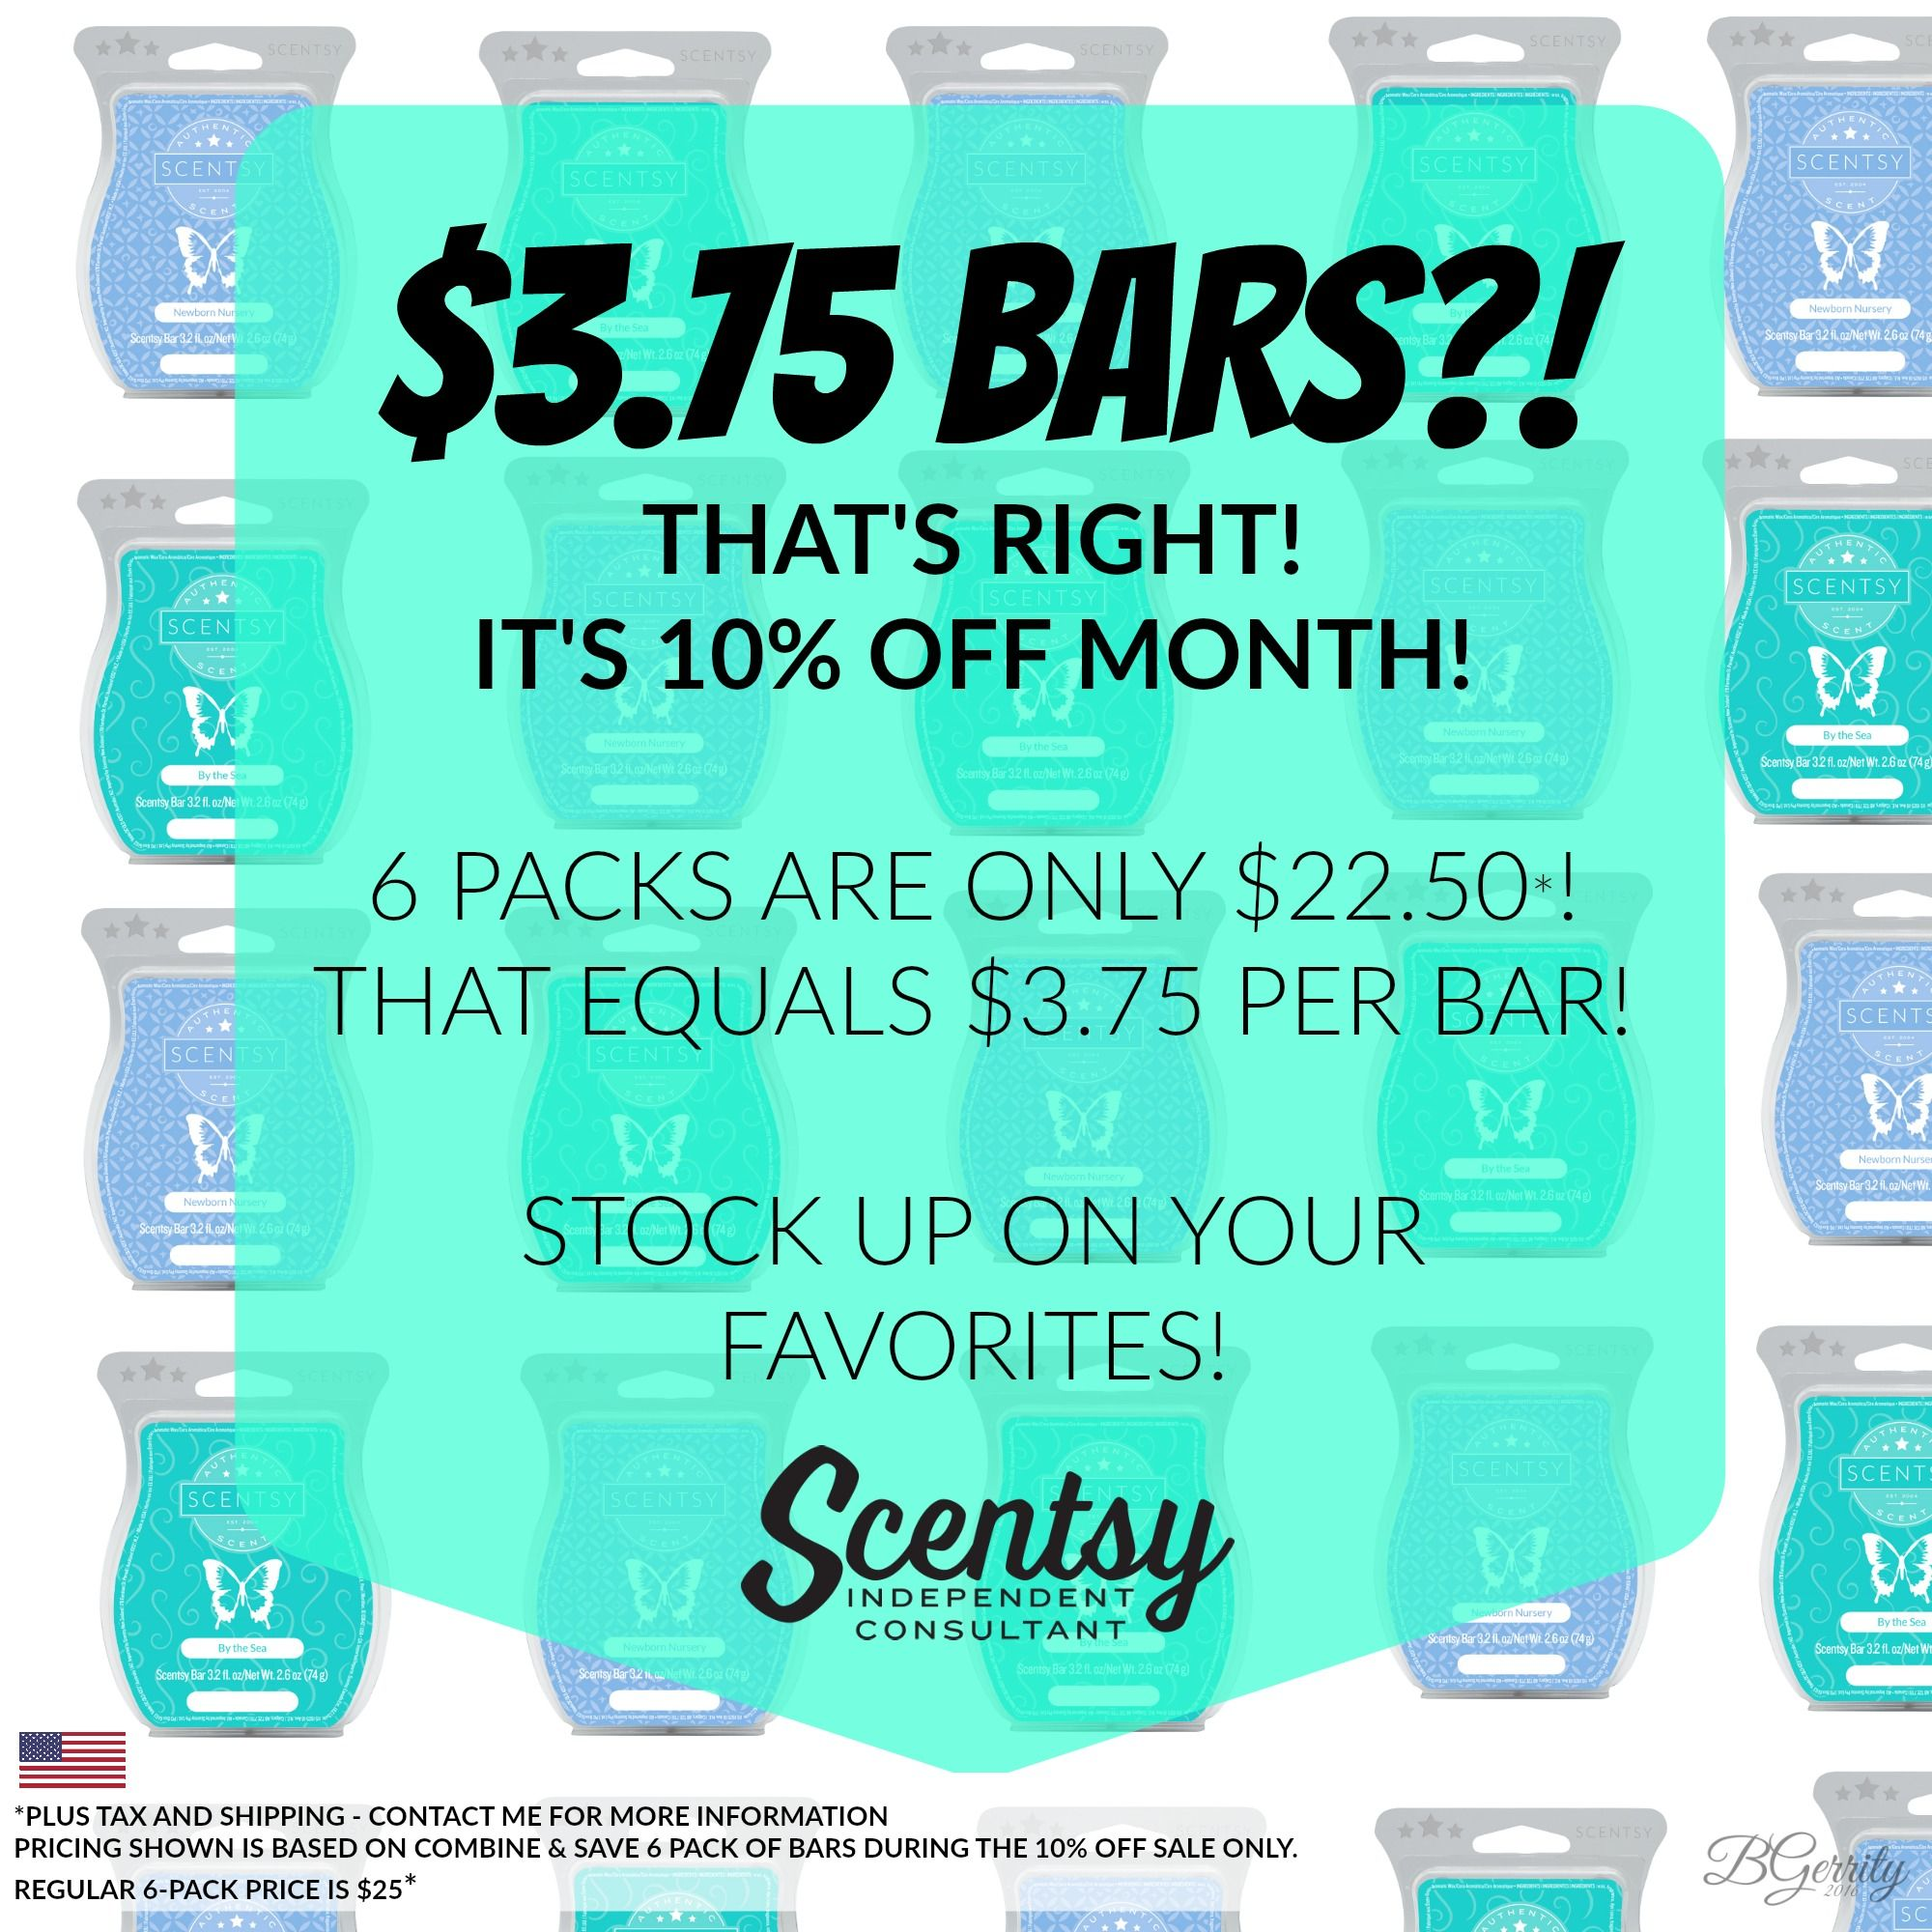 a947bc5843ca3 SCENTSY - AUGUST 10% OFF SALE - SCENTSY BARS Bars On Sale - USD ...